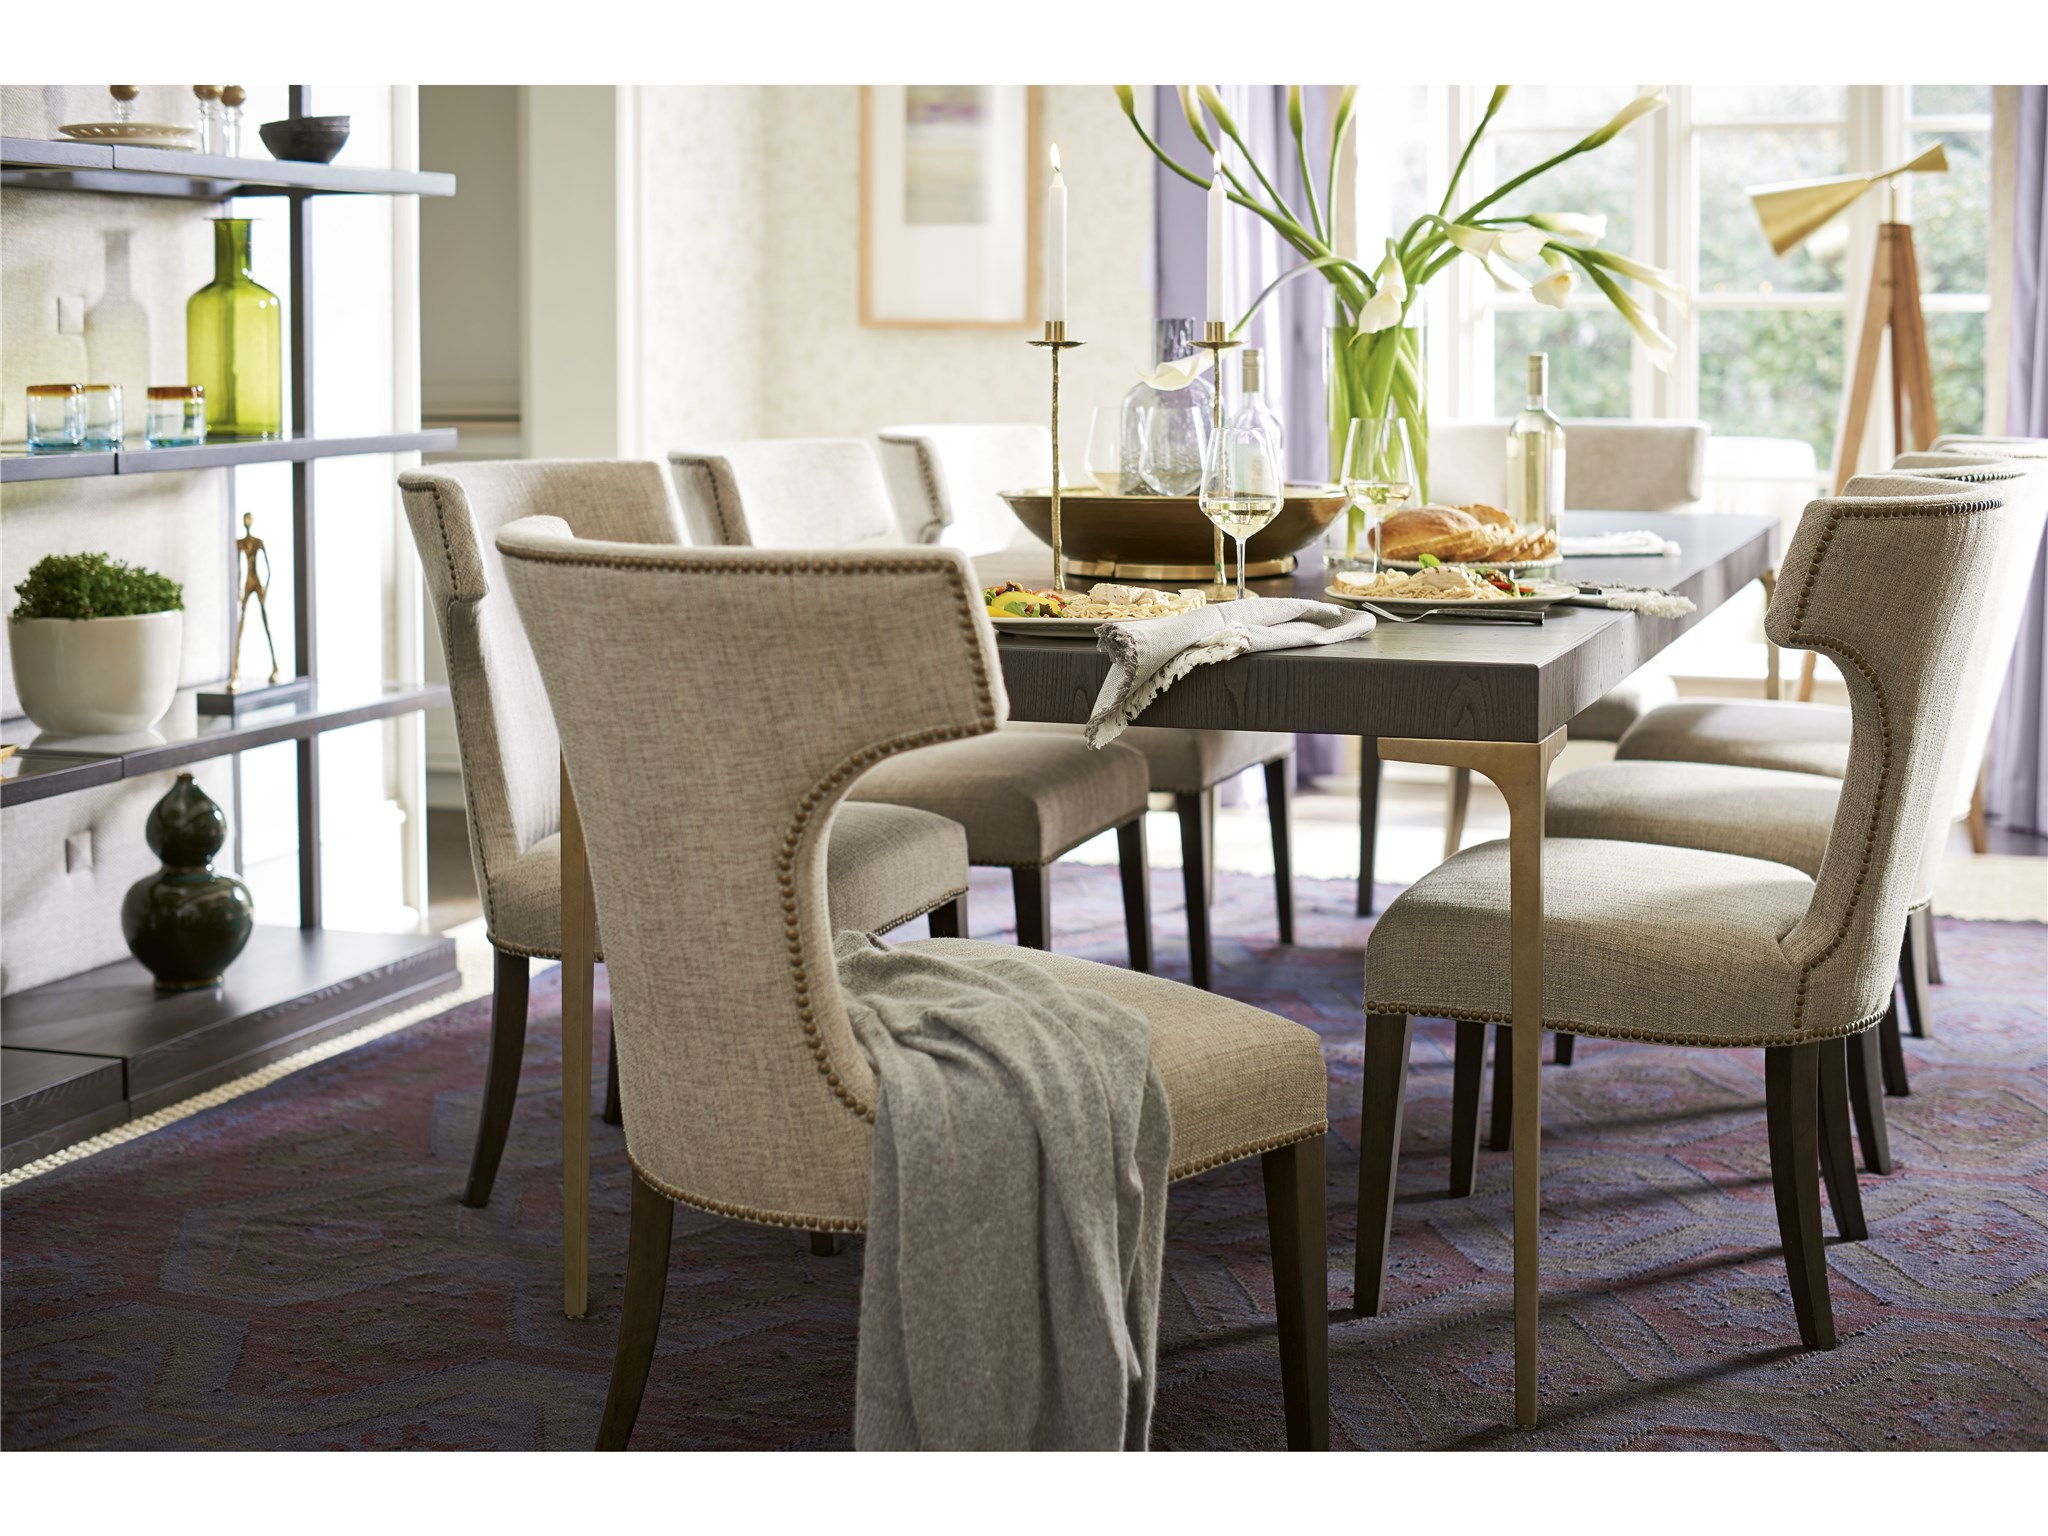 Soliloquy Soliloquy Dining Table   Universal Furniture With Most Recently Released Giles 3 Piece Dining Sets (Image 15 of 20)